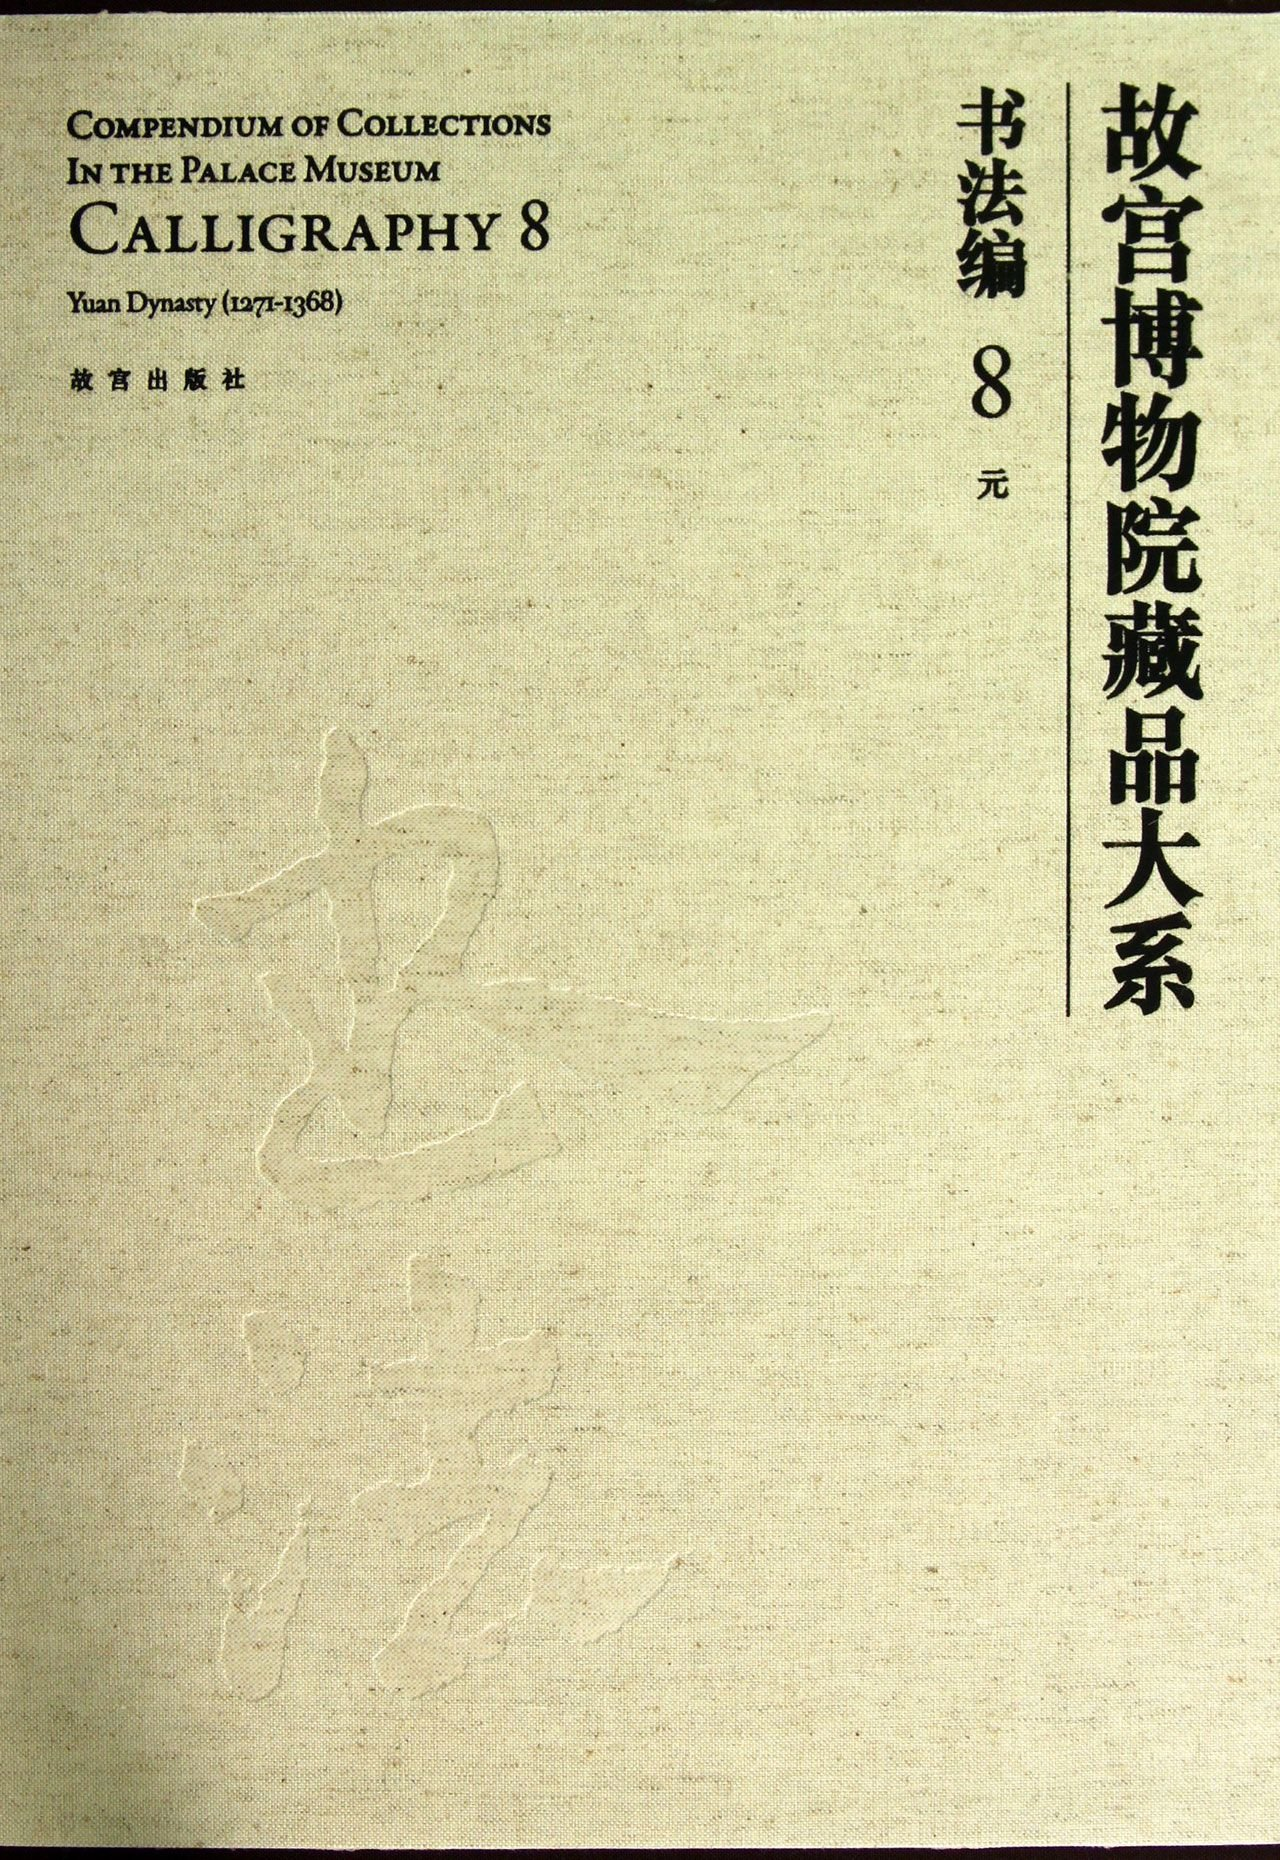 Download Compendium of Collections in the Palace Museum Calligrqphy 8 Yuan Dynasty (1271-1368)(Chinese Edition) pdf